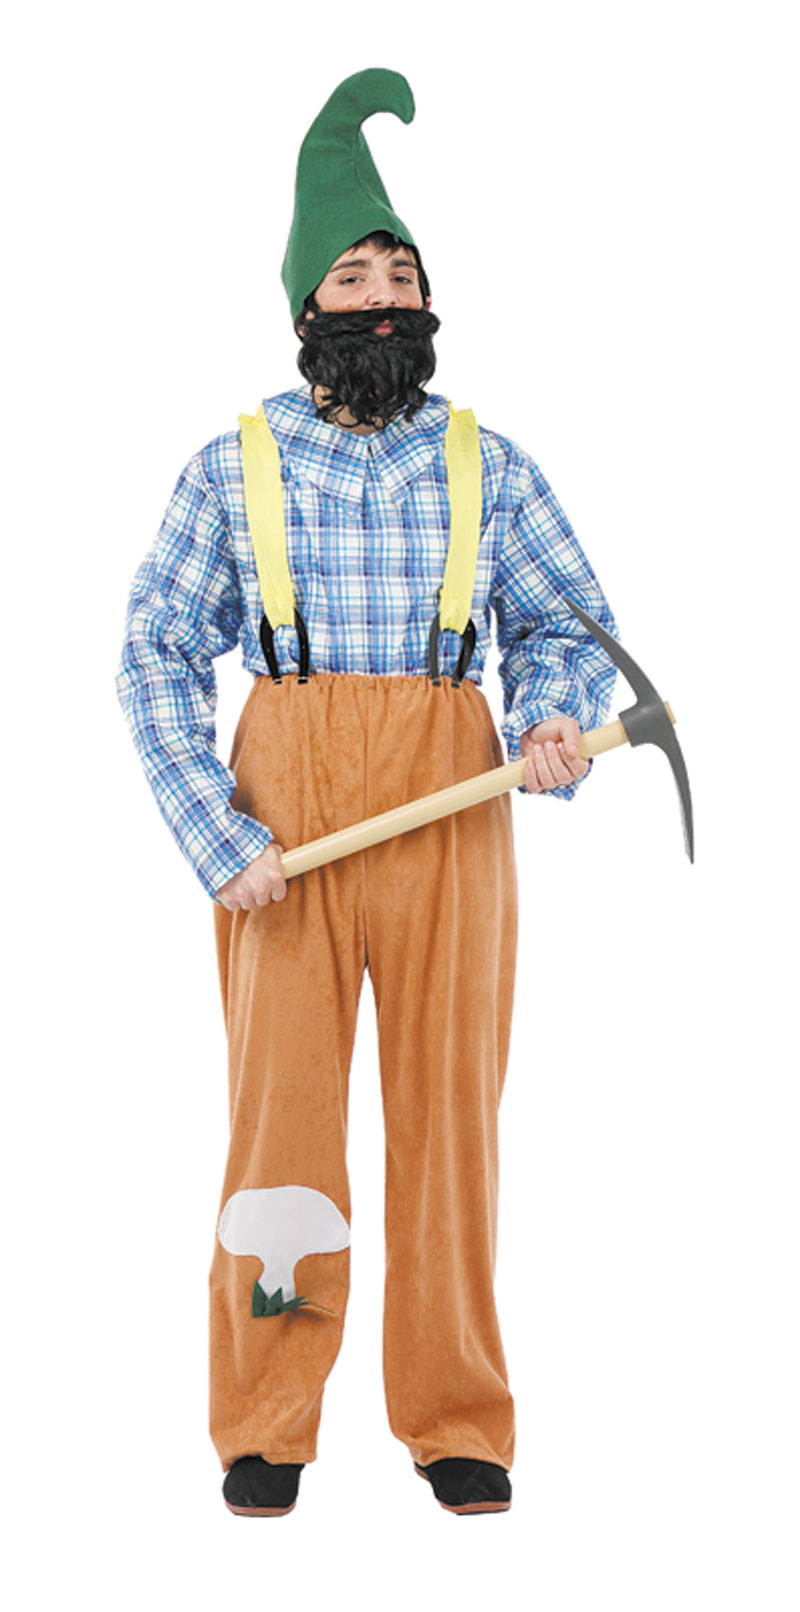 Farmer man costume